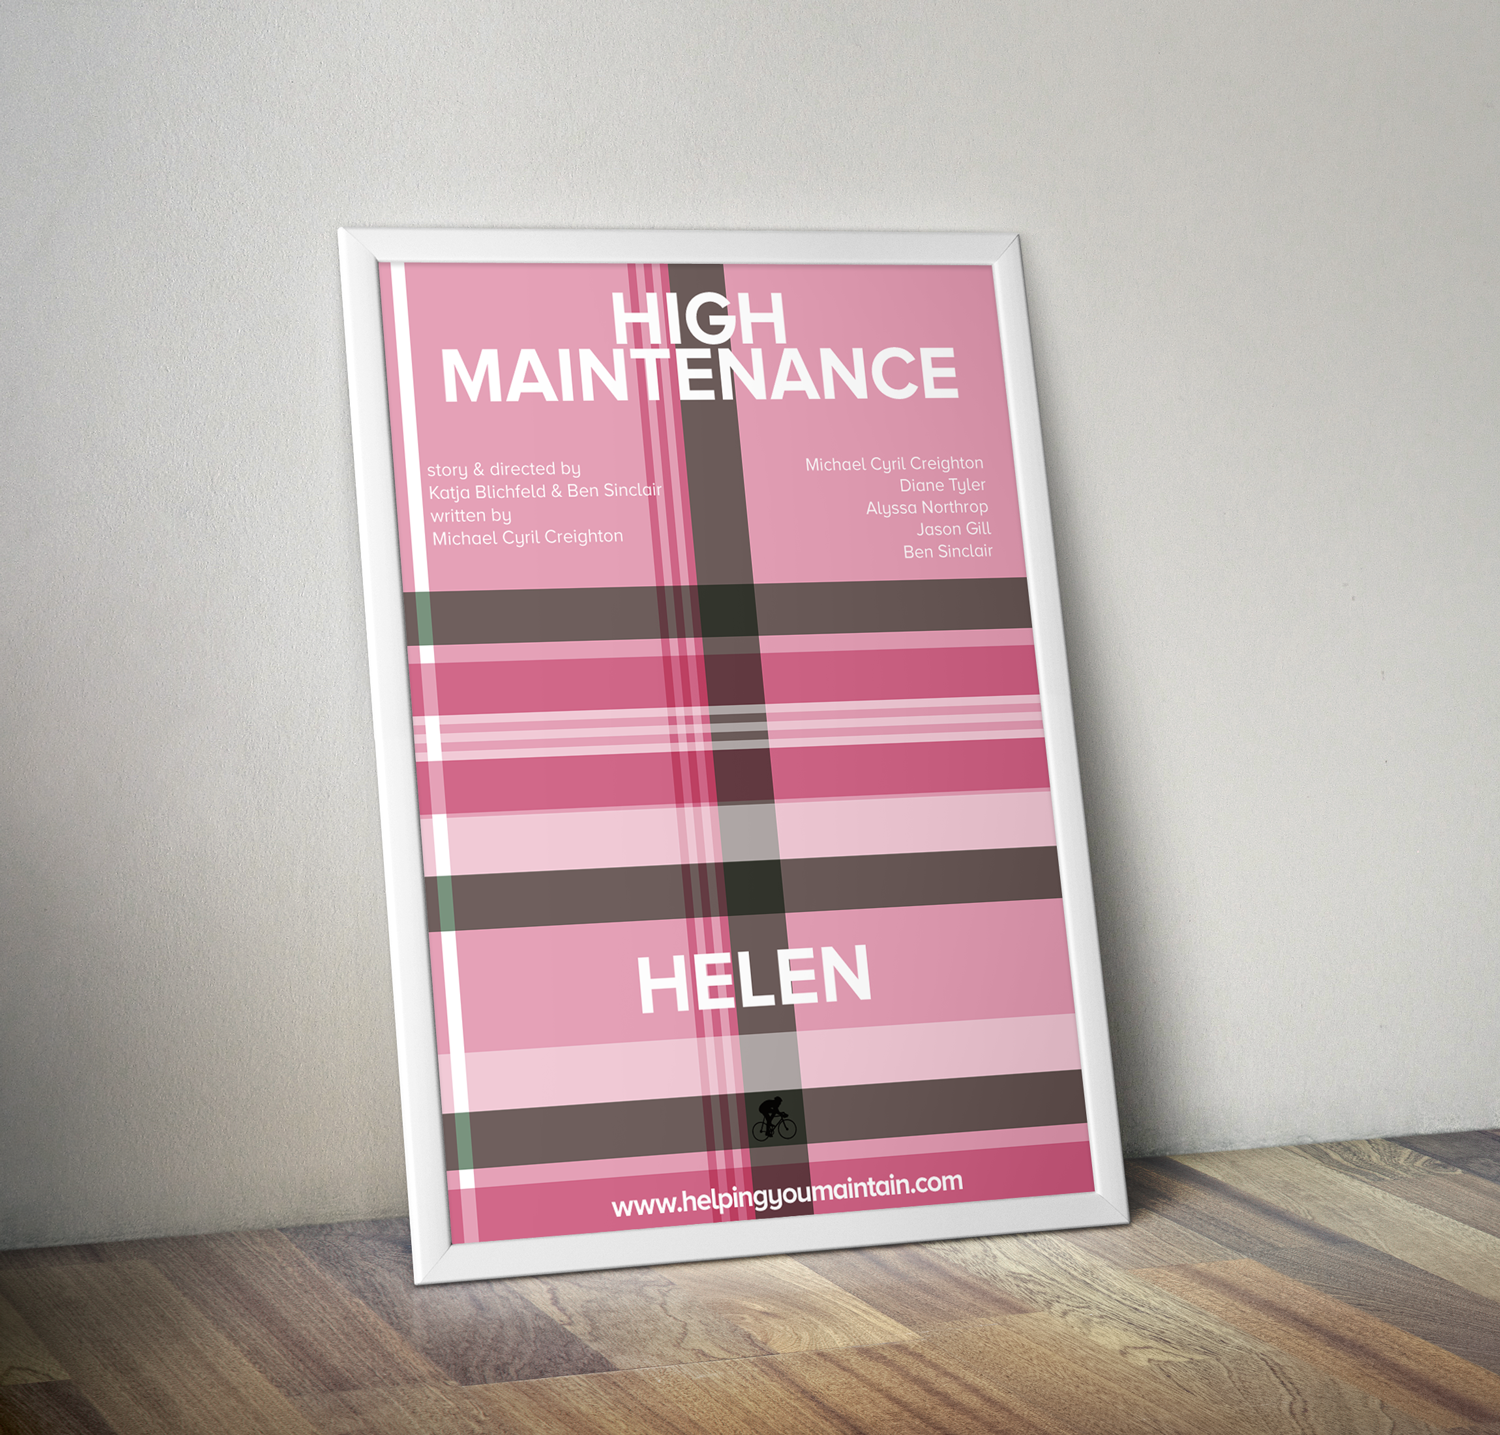 HBO's High Maintenance